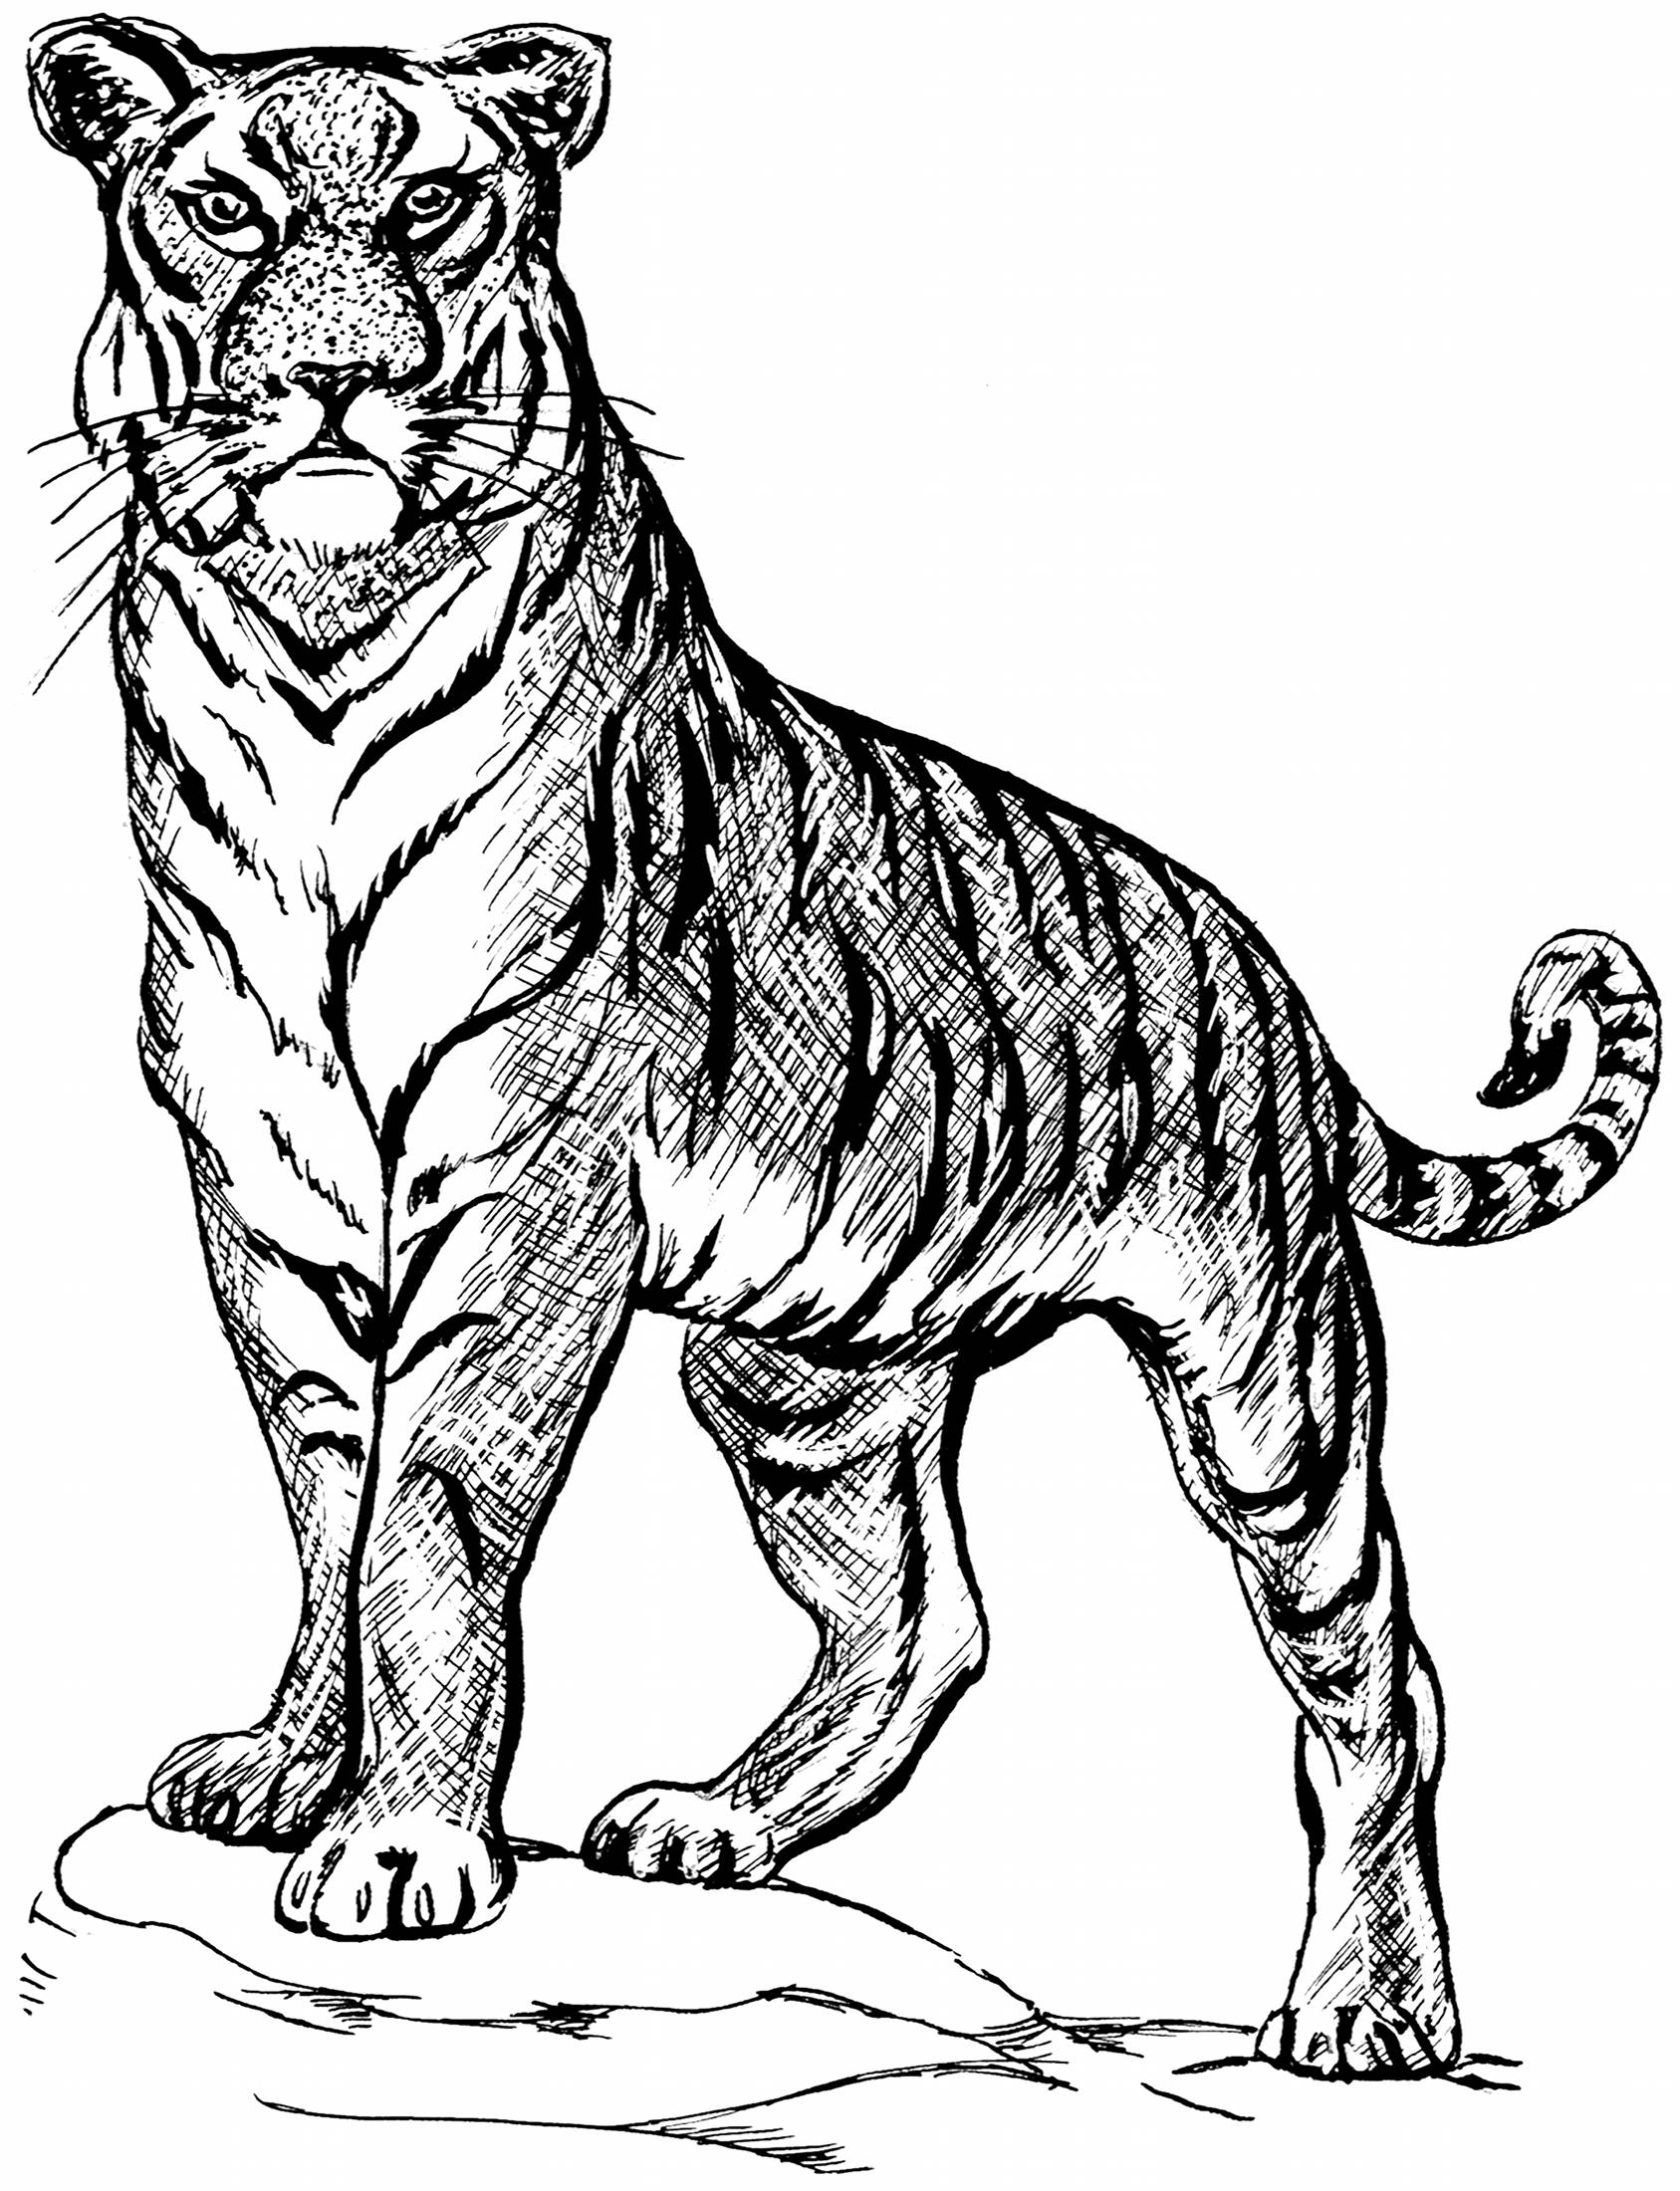 tiger drawing 19 animal drawing templates free psd ai eps format tiger drawing